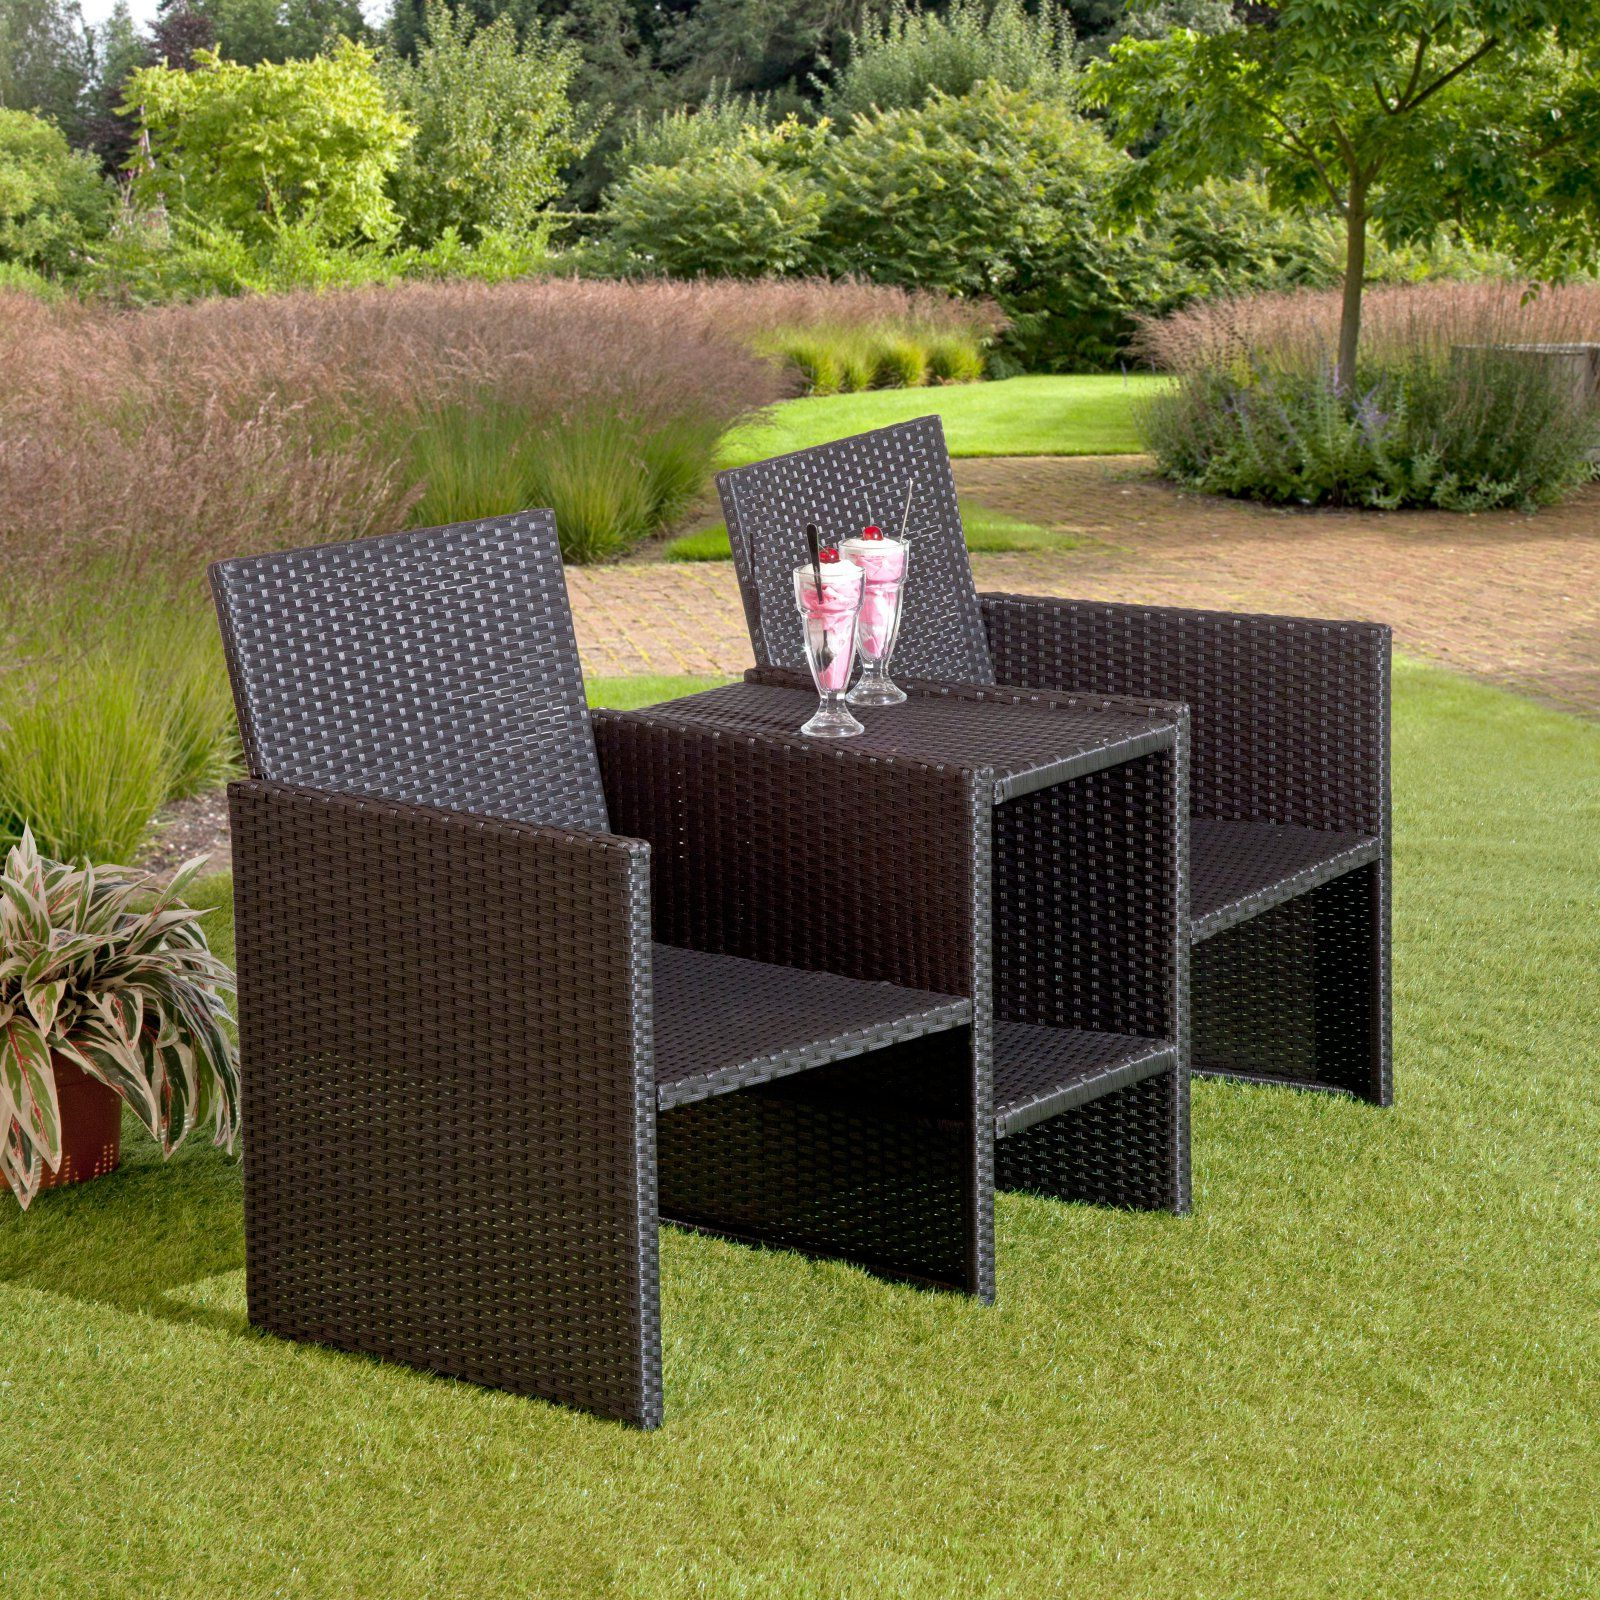 2020 Wicker Tete A Tete Benches Within Suntime Outdoor Living Rattan Outdoor Tete A Tete Bench (View 18 of 30)